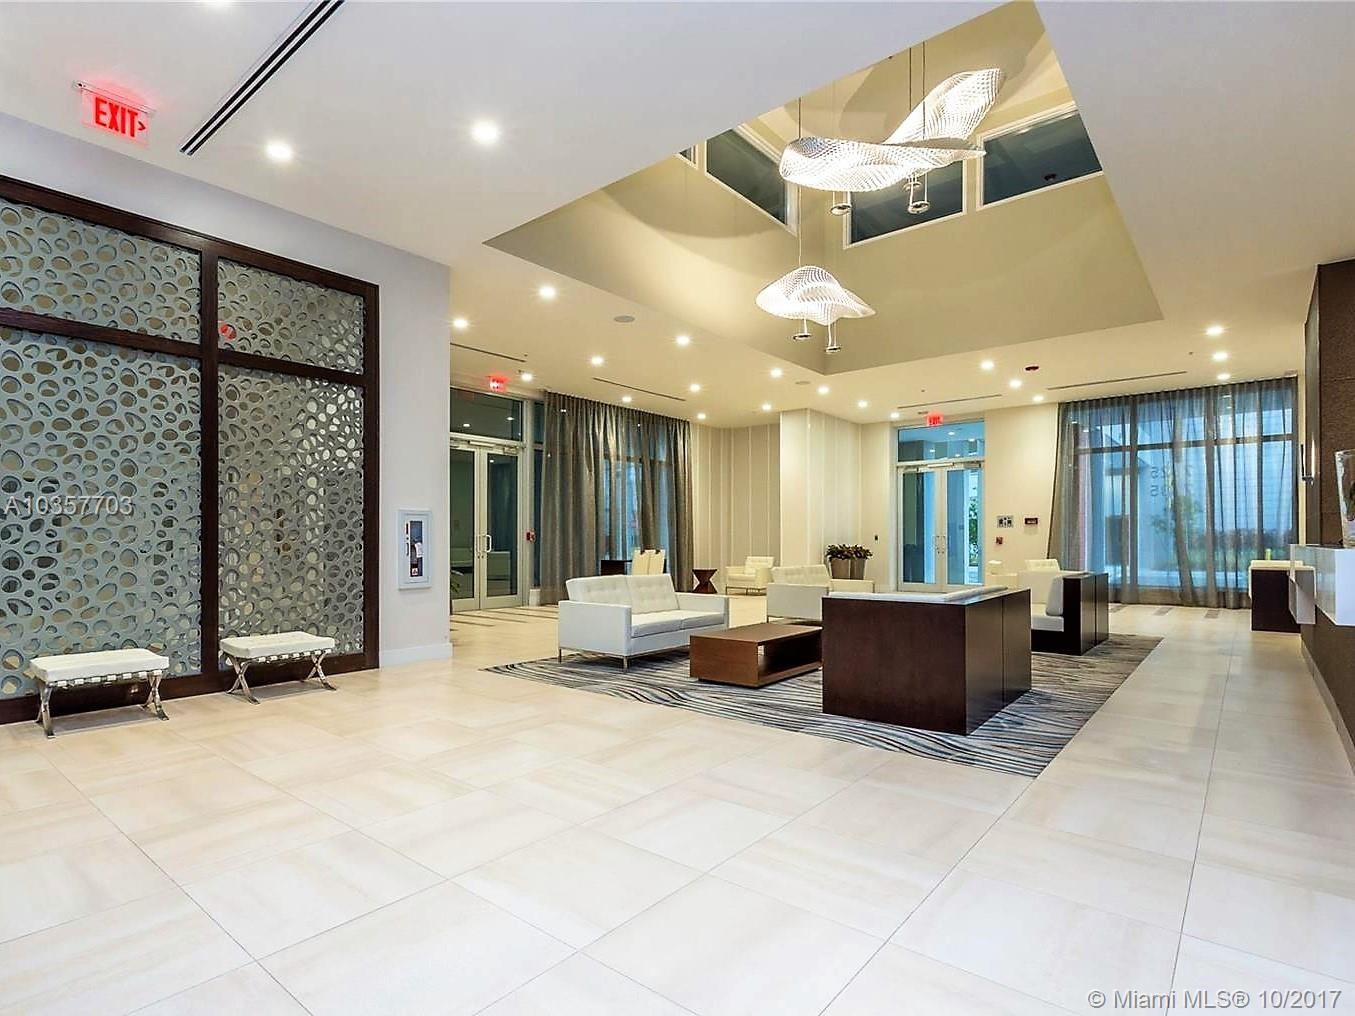 7825 NW 107th Ave # 3-211, Doral , FL 33178